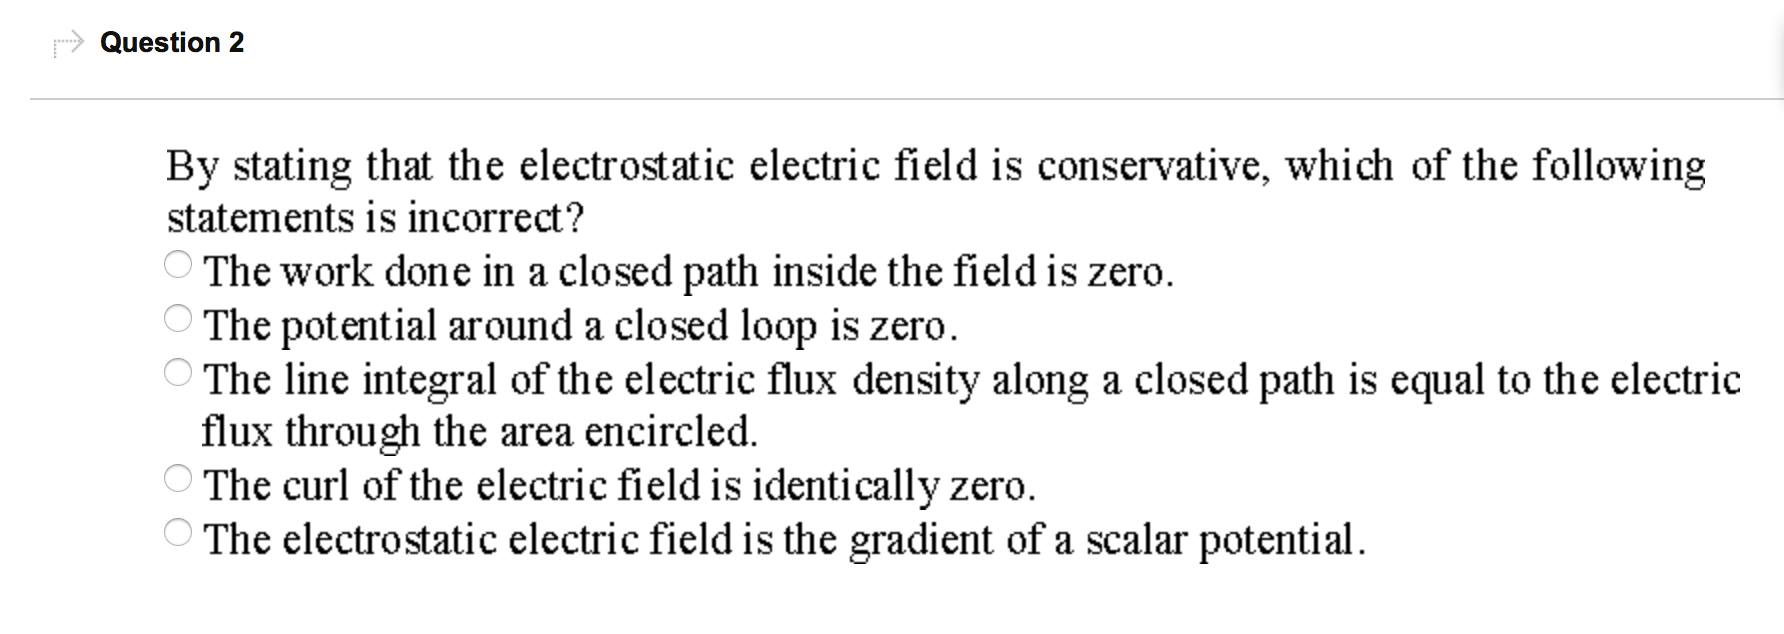 By stating that the electrostatic electric field i